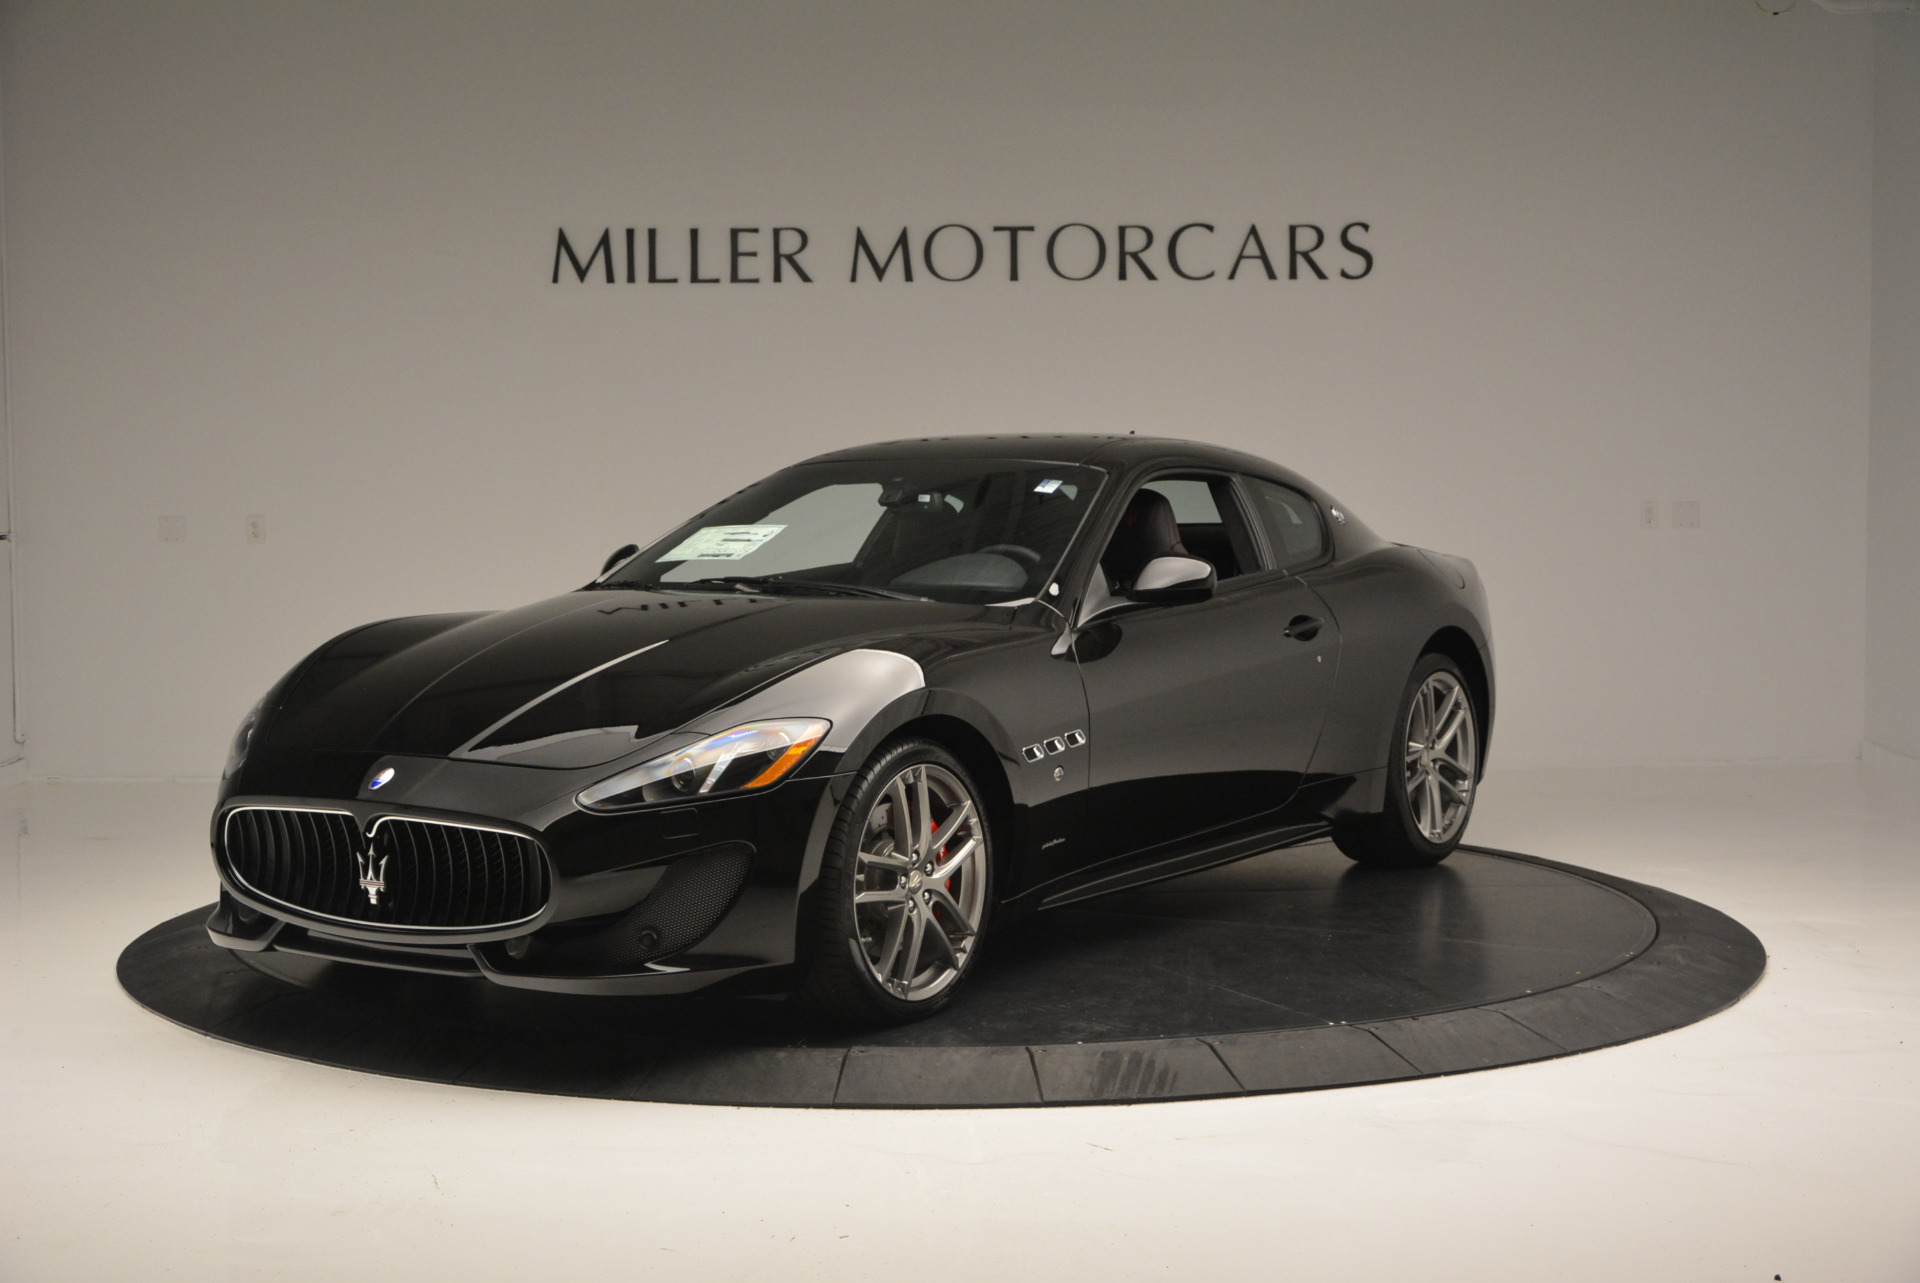 New 2016 Maserati GranTurismo Sport for sale Sold at Bentley Greenwich in Greenwich CT 06830 1